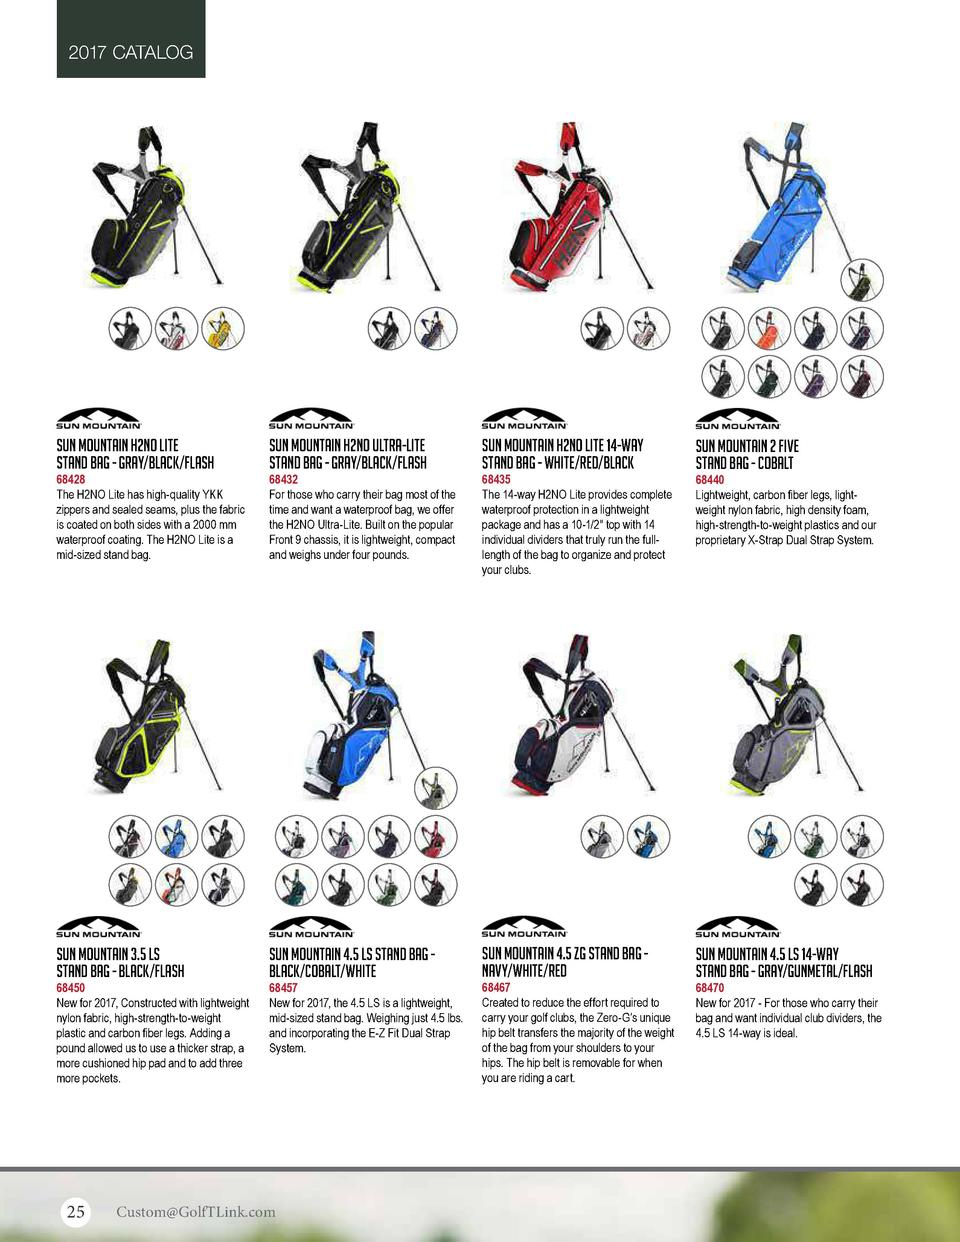 2017 CATALOG  Sun Mountain H2NO Lite Stand Bag - Gray Black Flash  Sun Mountain H2NO Ultra-Lite Stand Bag - Gray Black Fla...